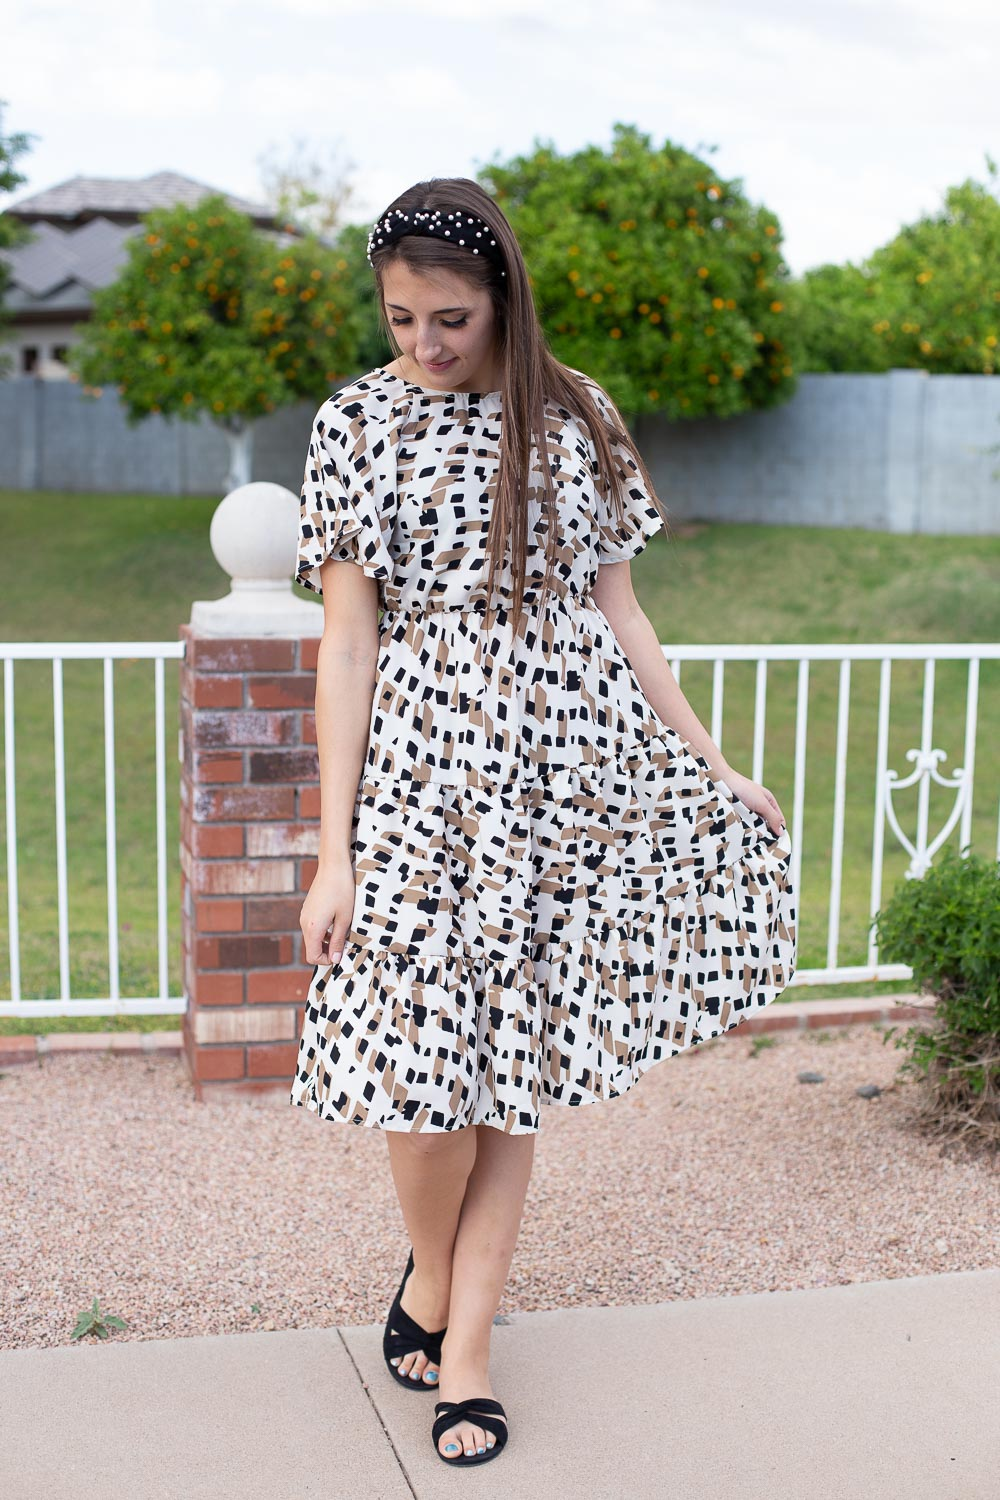 Ivory, brown and black printed dress on model